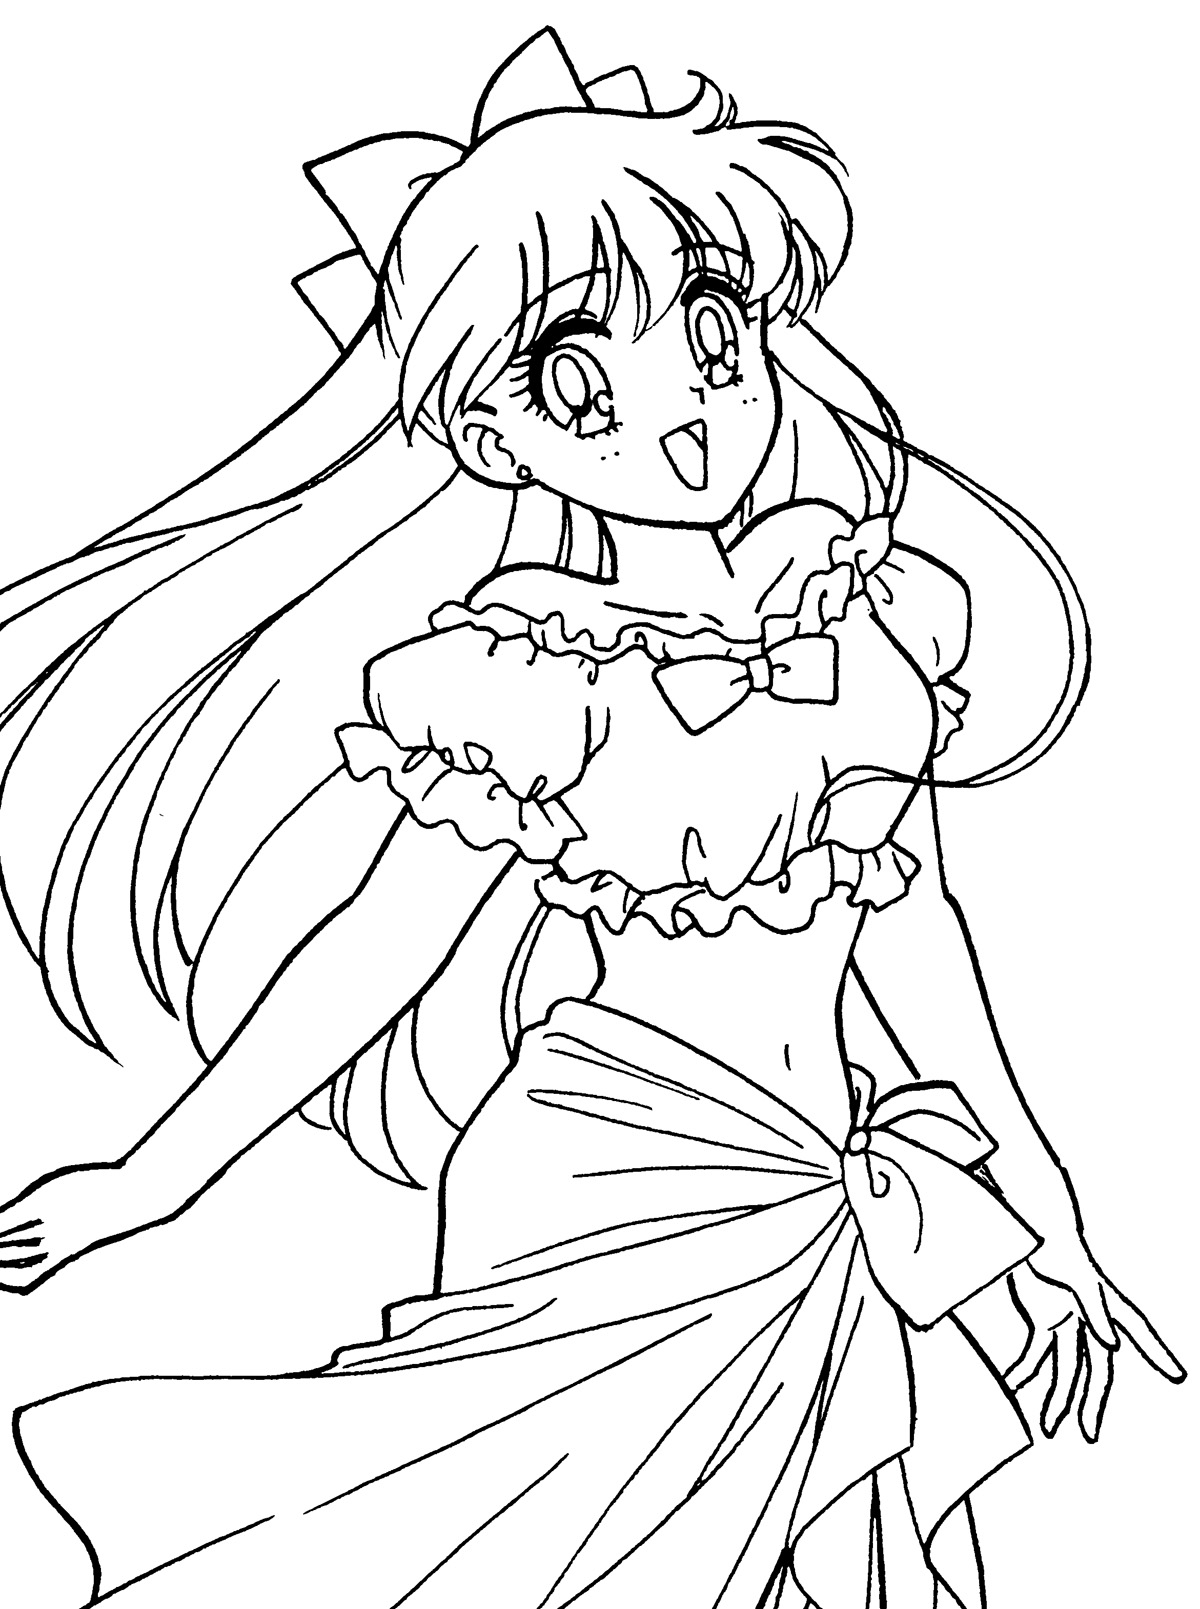 Coloring Pages Sailor Venus Coloring Pages sailor venus coloring pages eassume com tsuki matsuri the sailormoon book archive